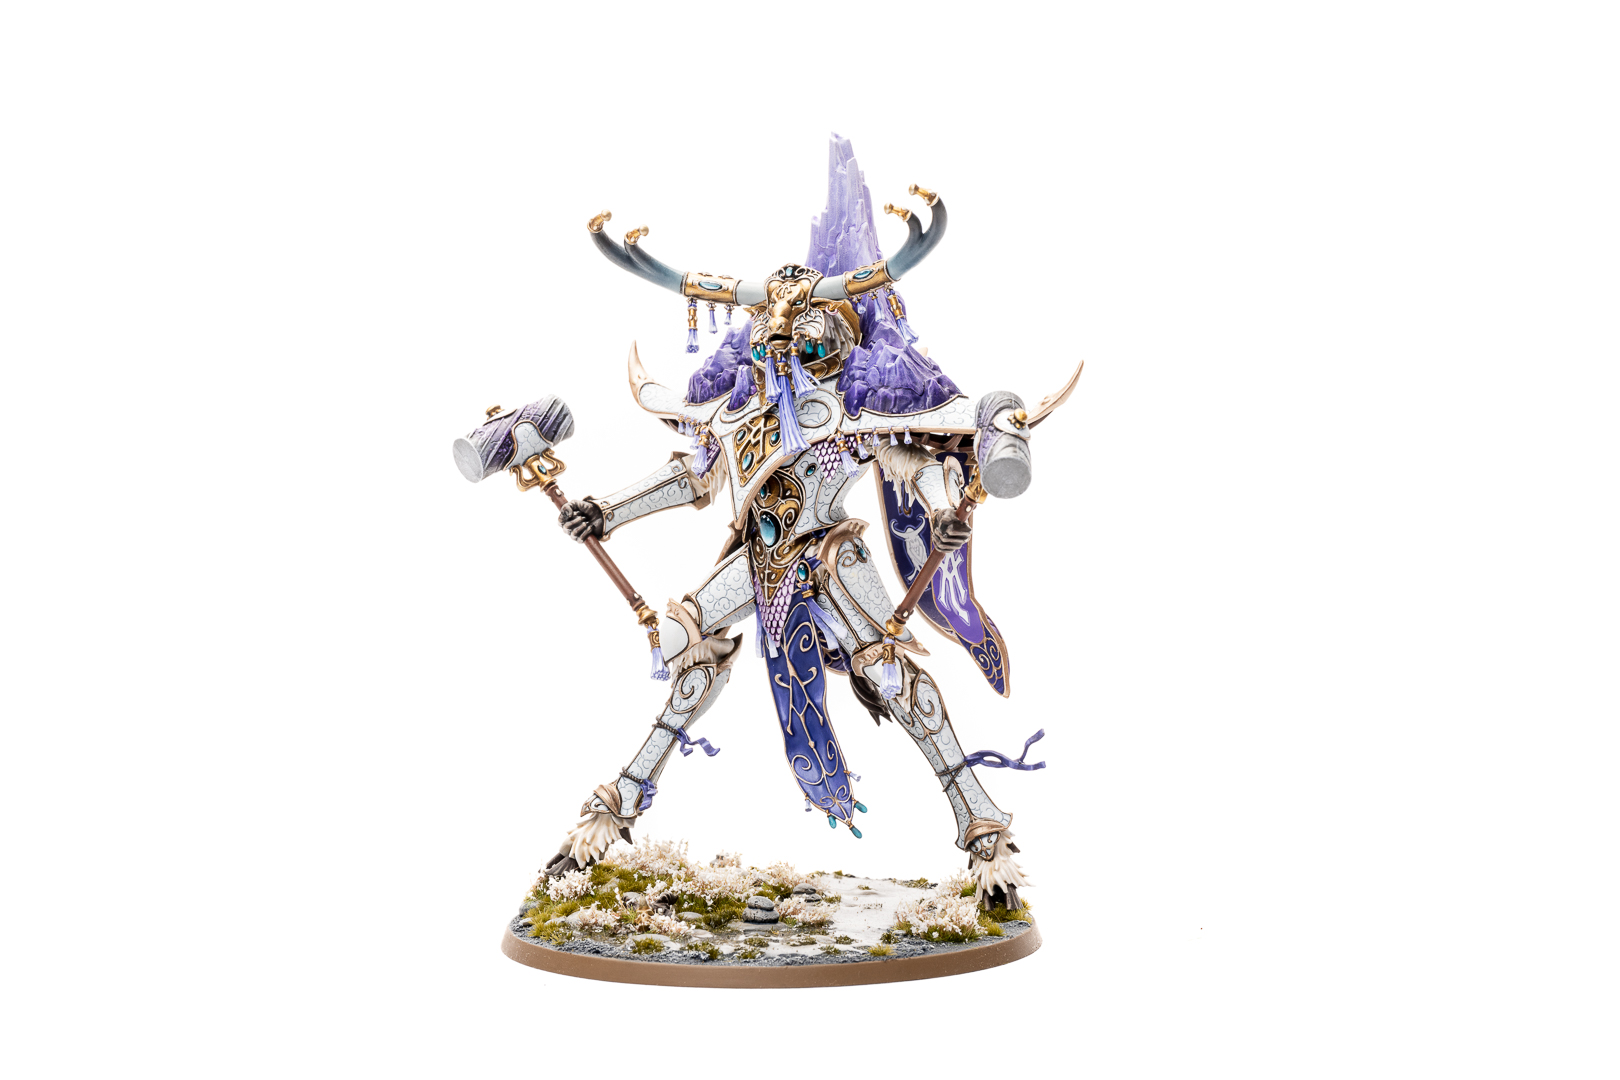 Avalenor the Stone Heart King - Lumineth Realm Lords - Warhammer Age of Sigmar